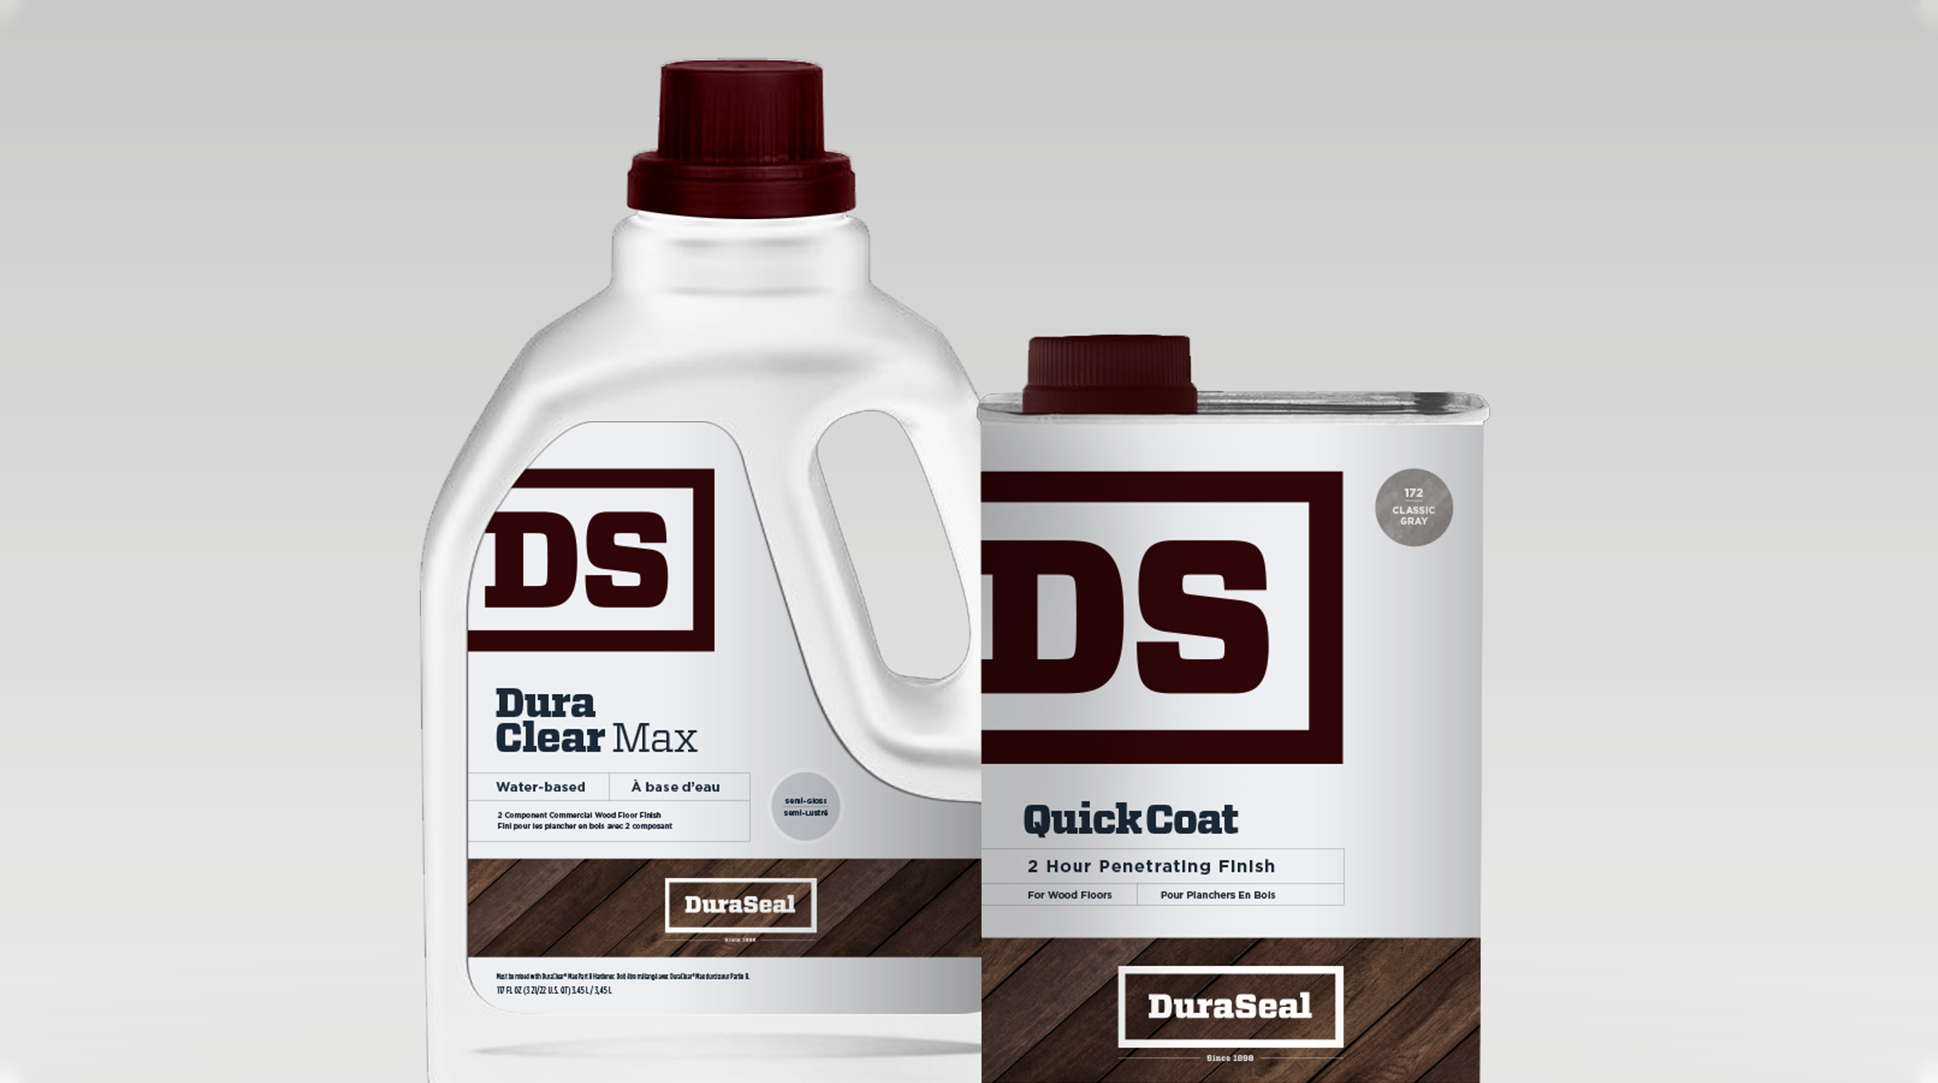 DuraSeal-packaging